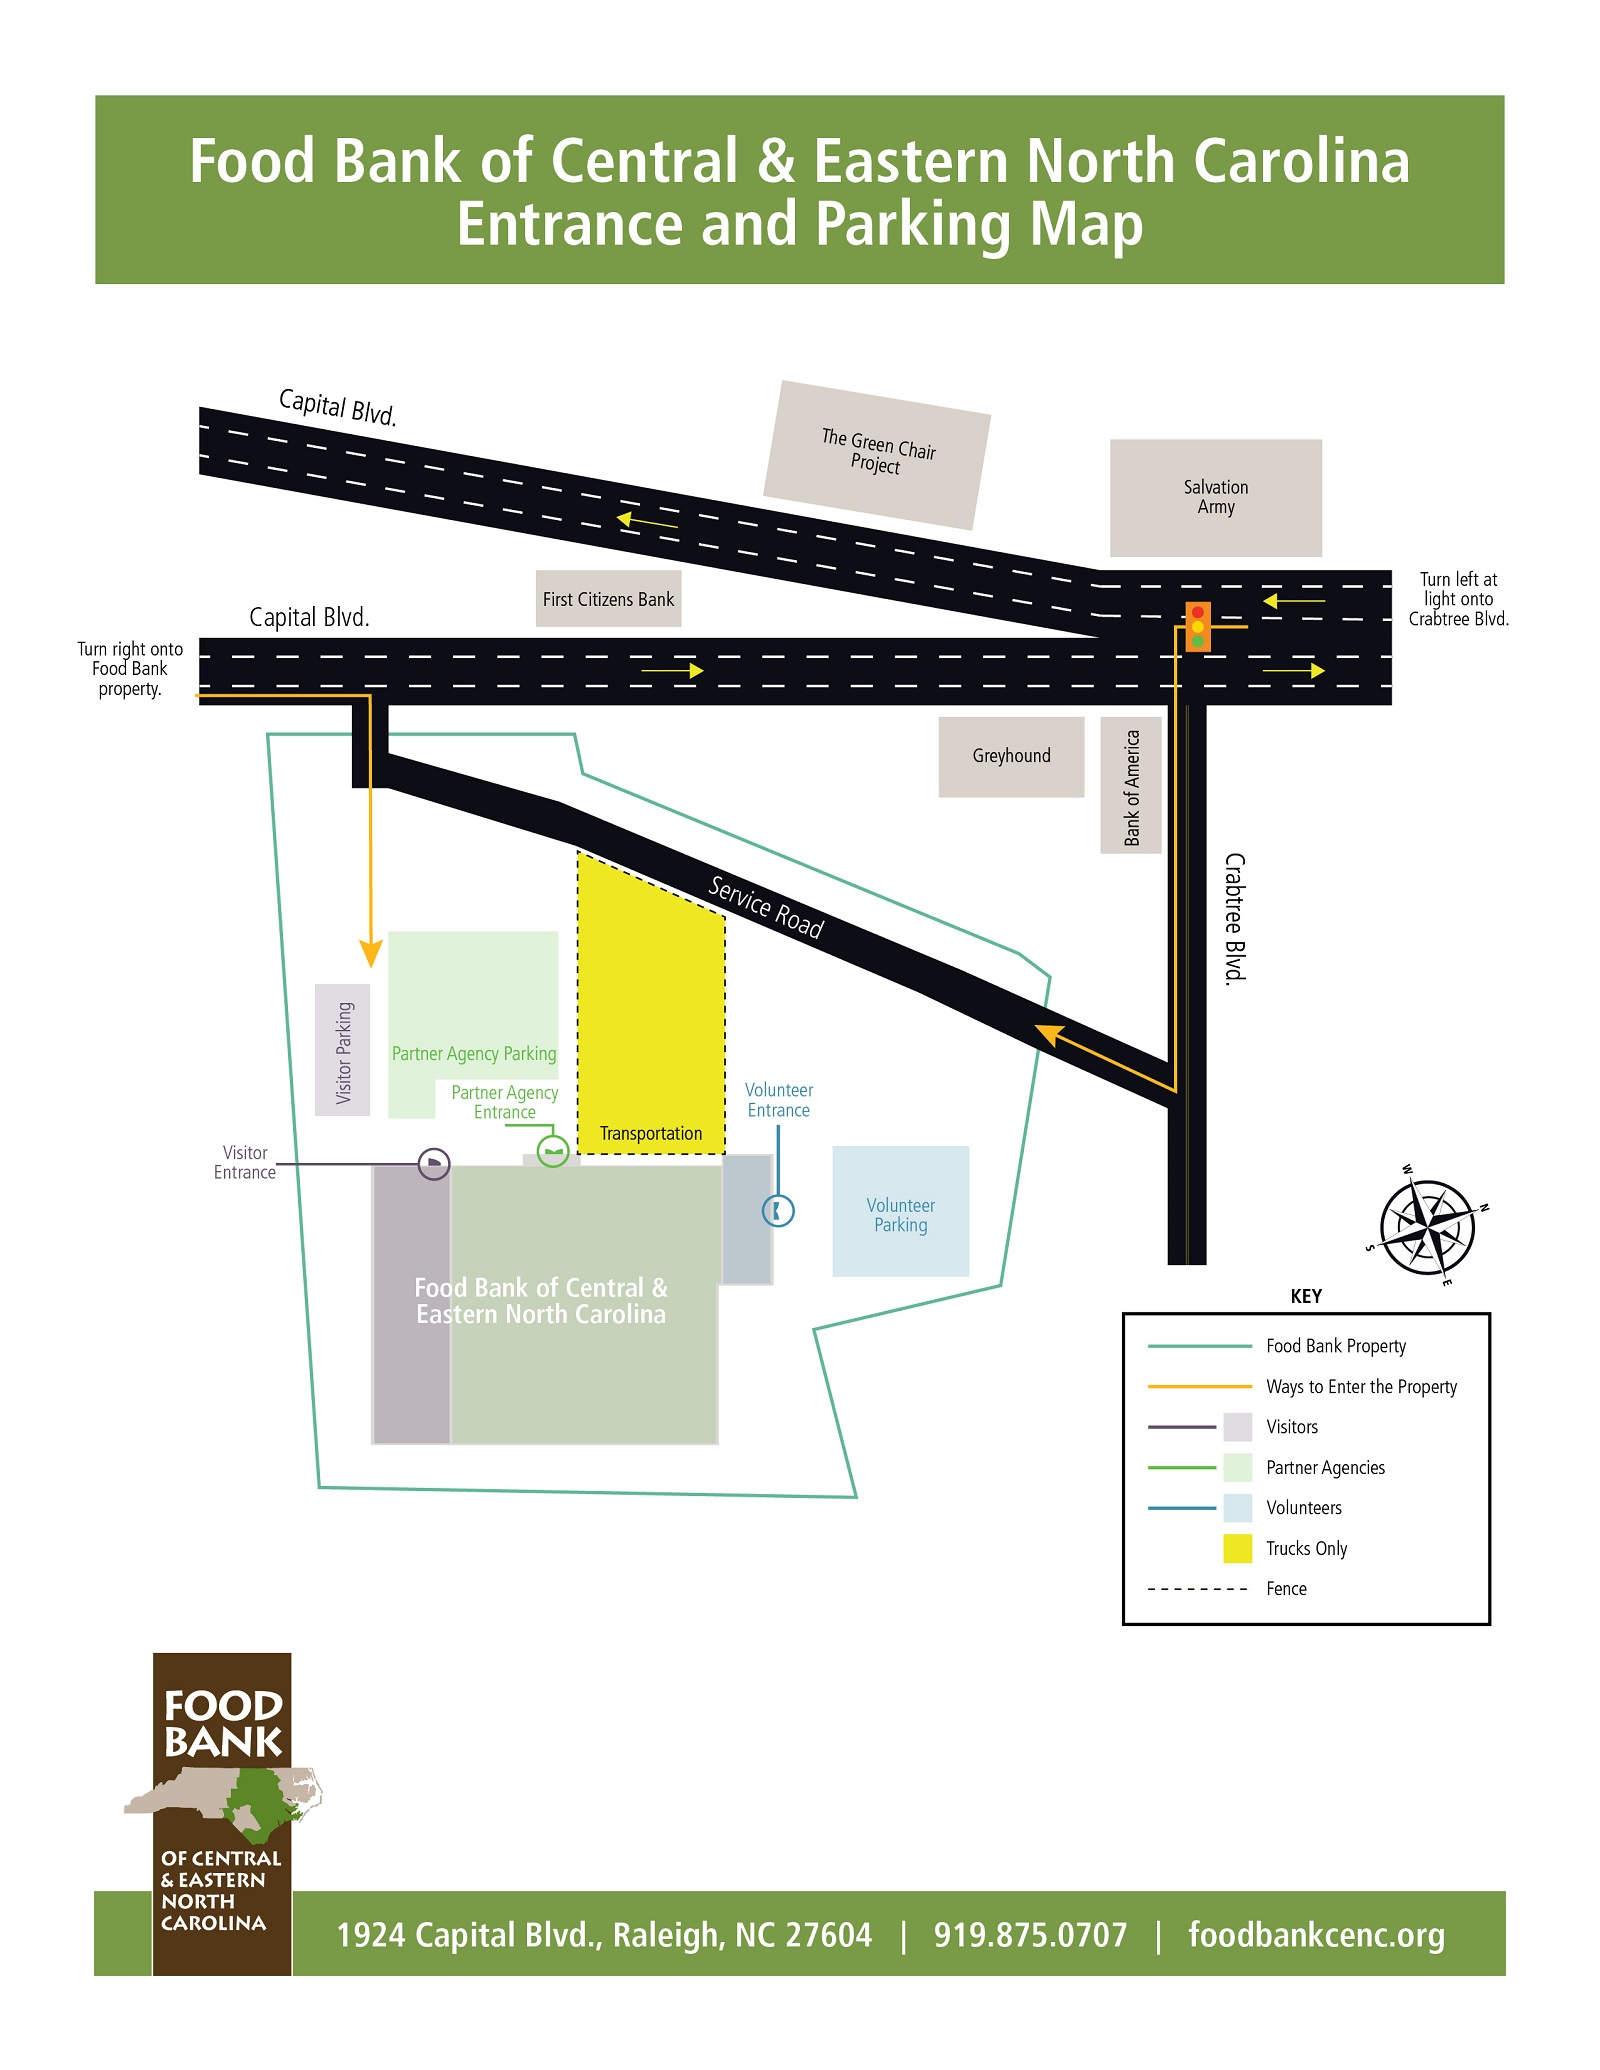 Raleigh Branch Entrance and Parking Map